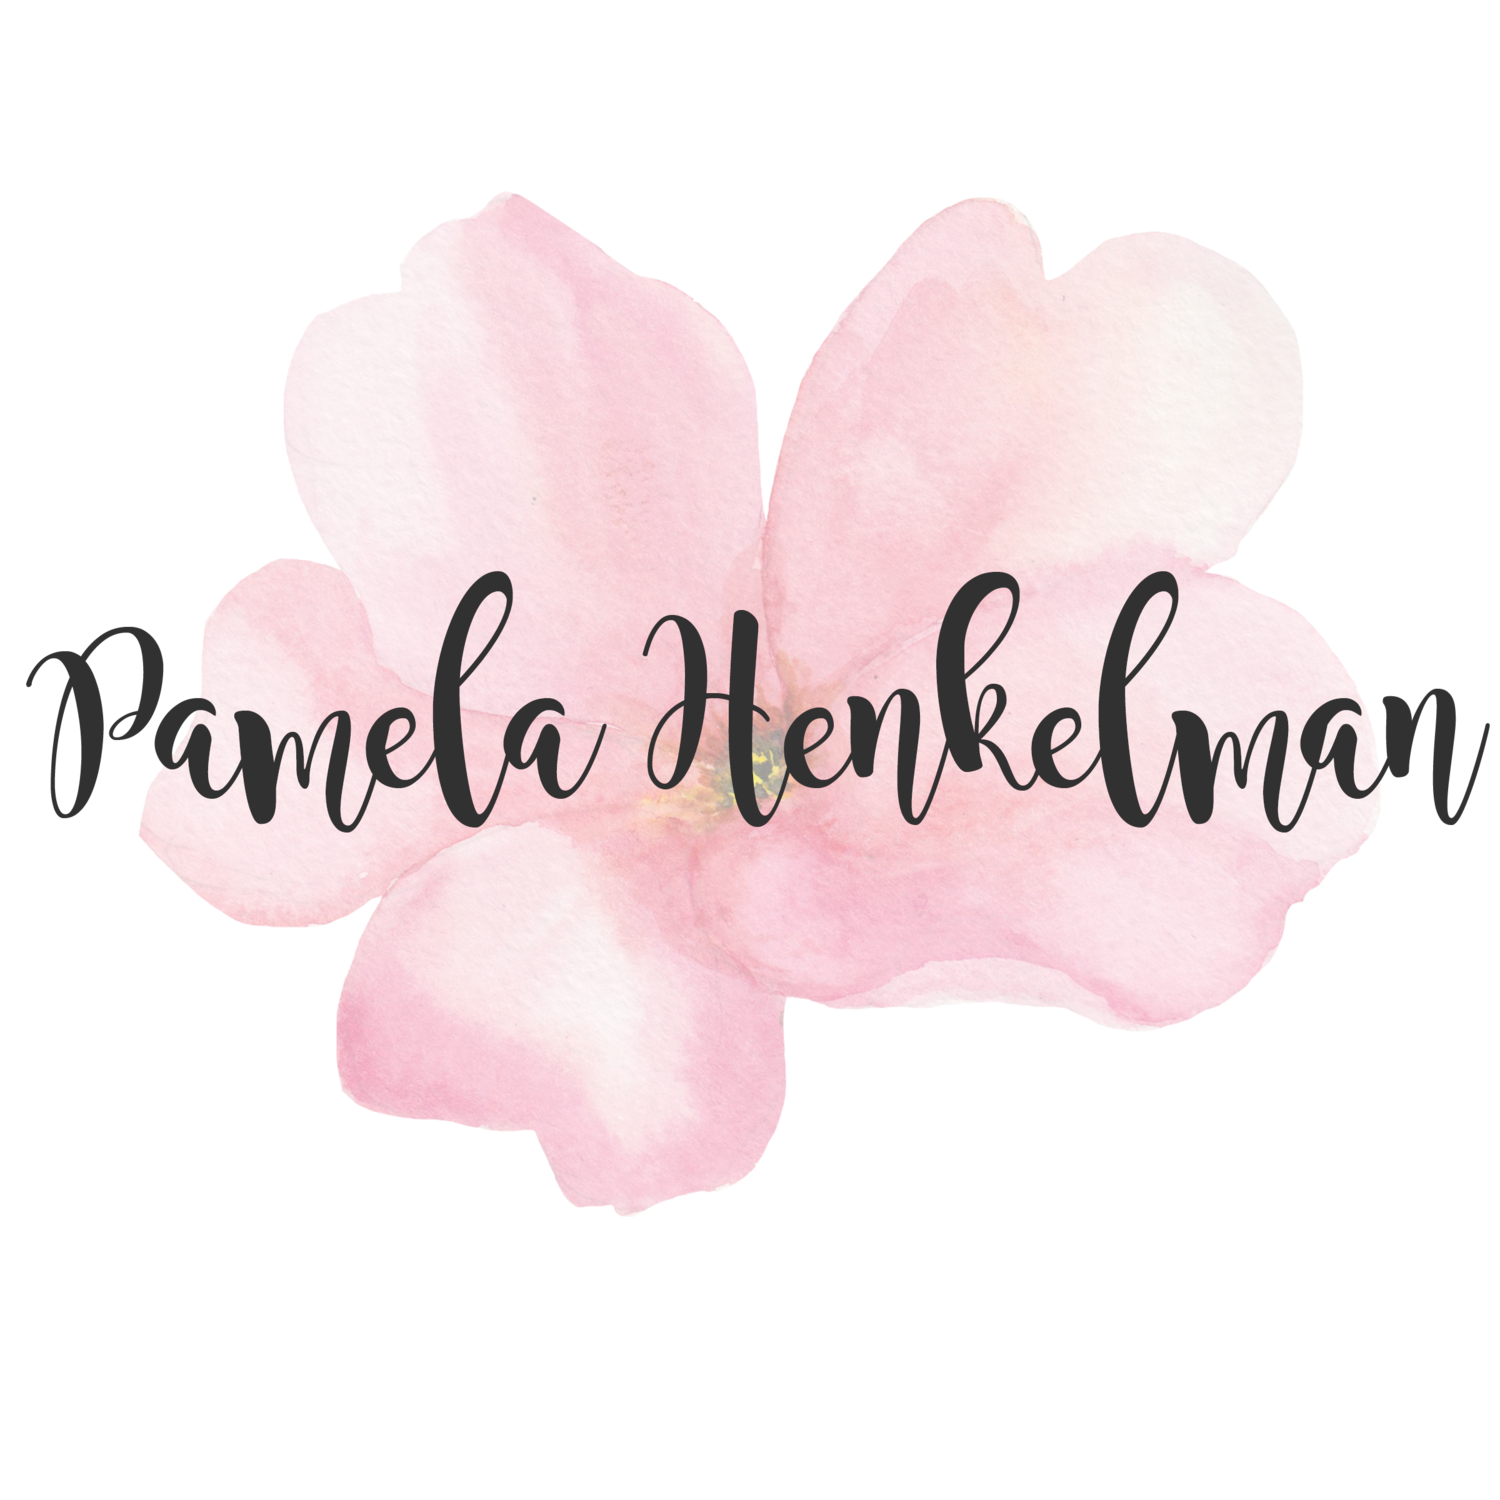 Pamela Henkelman | Be Encouraged